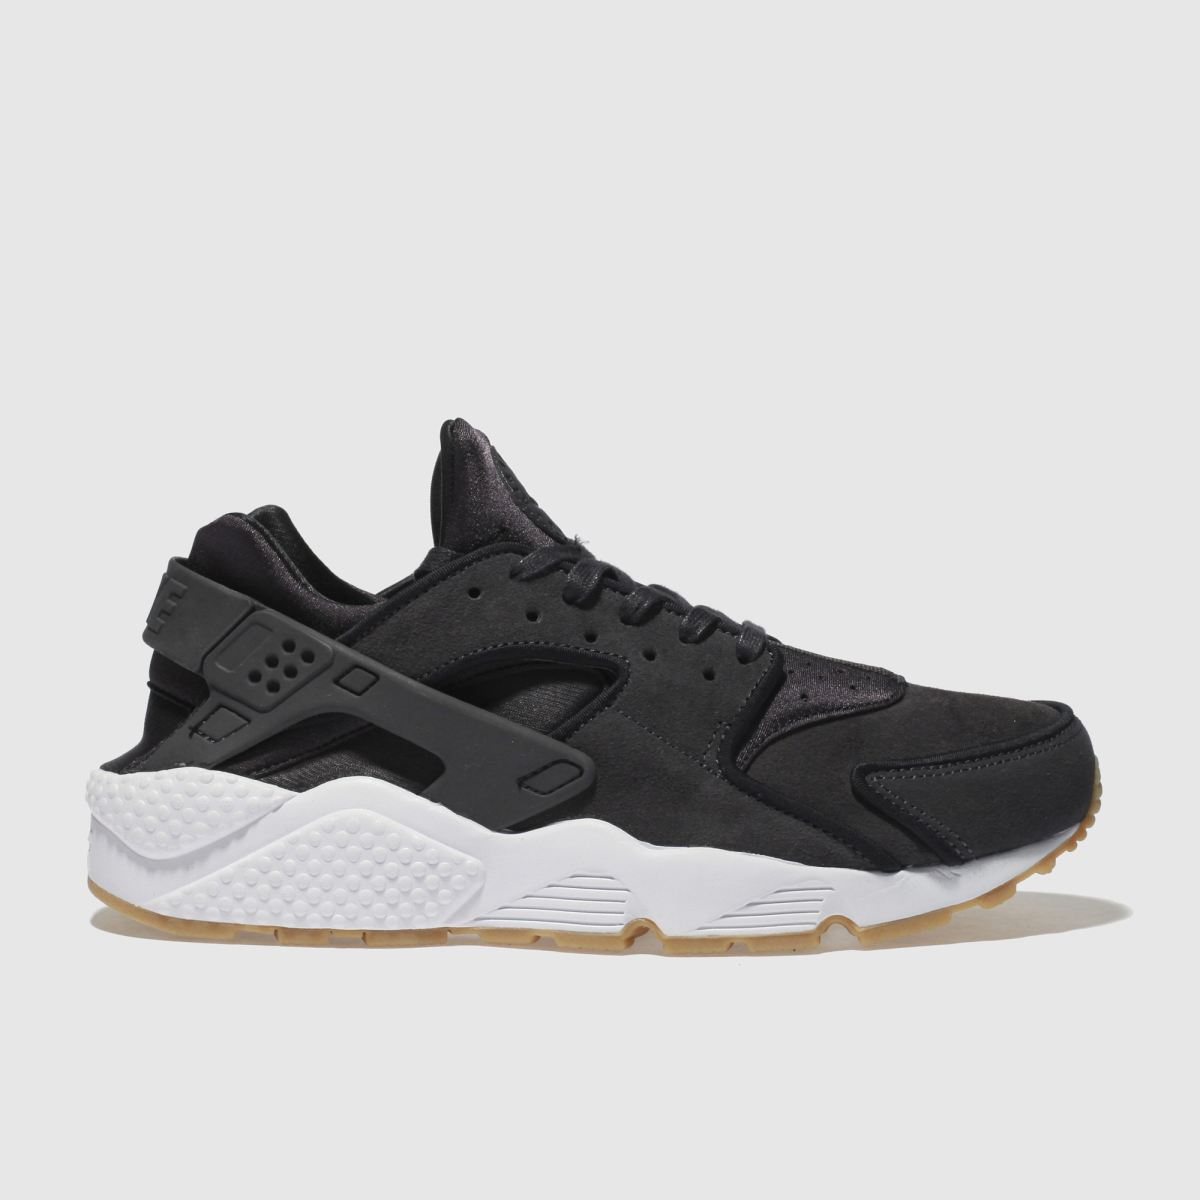 Nike Dark Grey Huarache Run Trainers